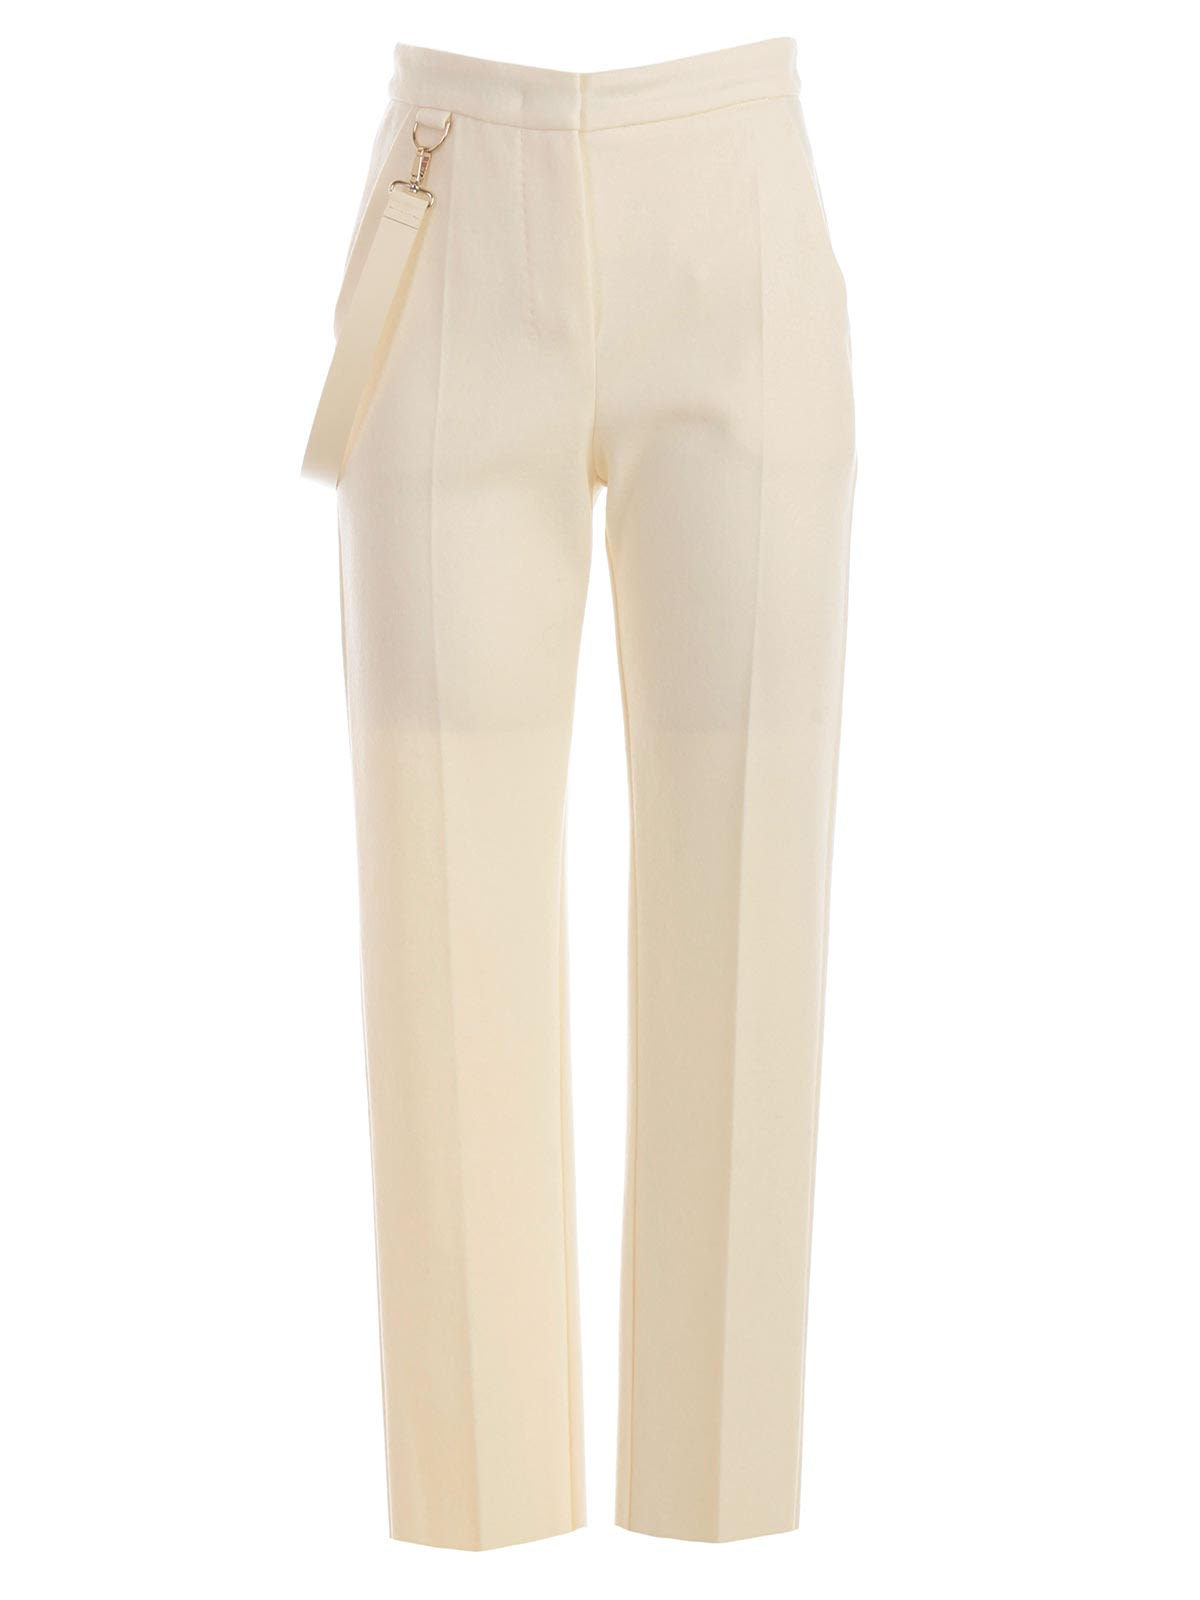 HIGH WAISTED TROUSERS from Italist.com